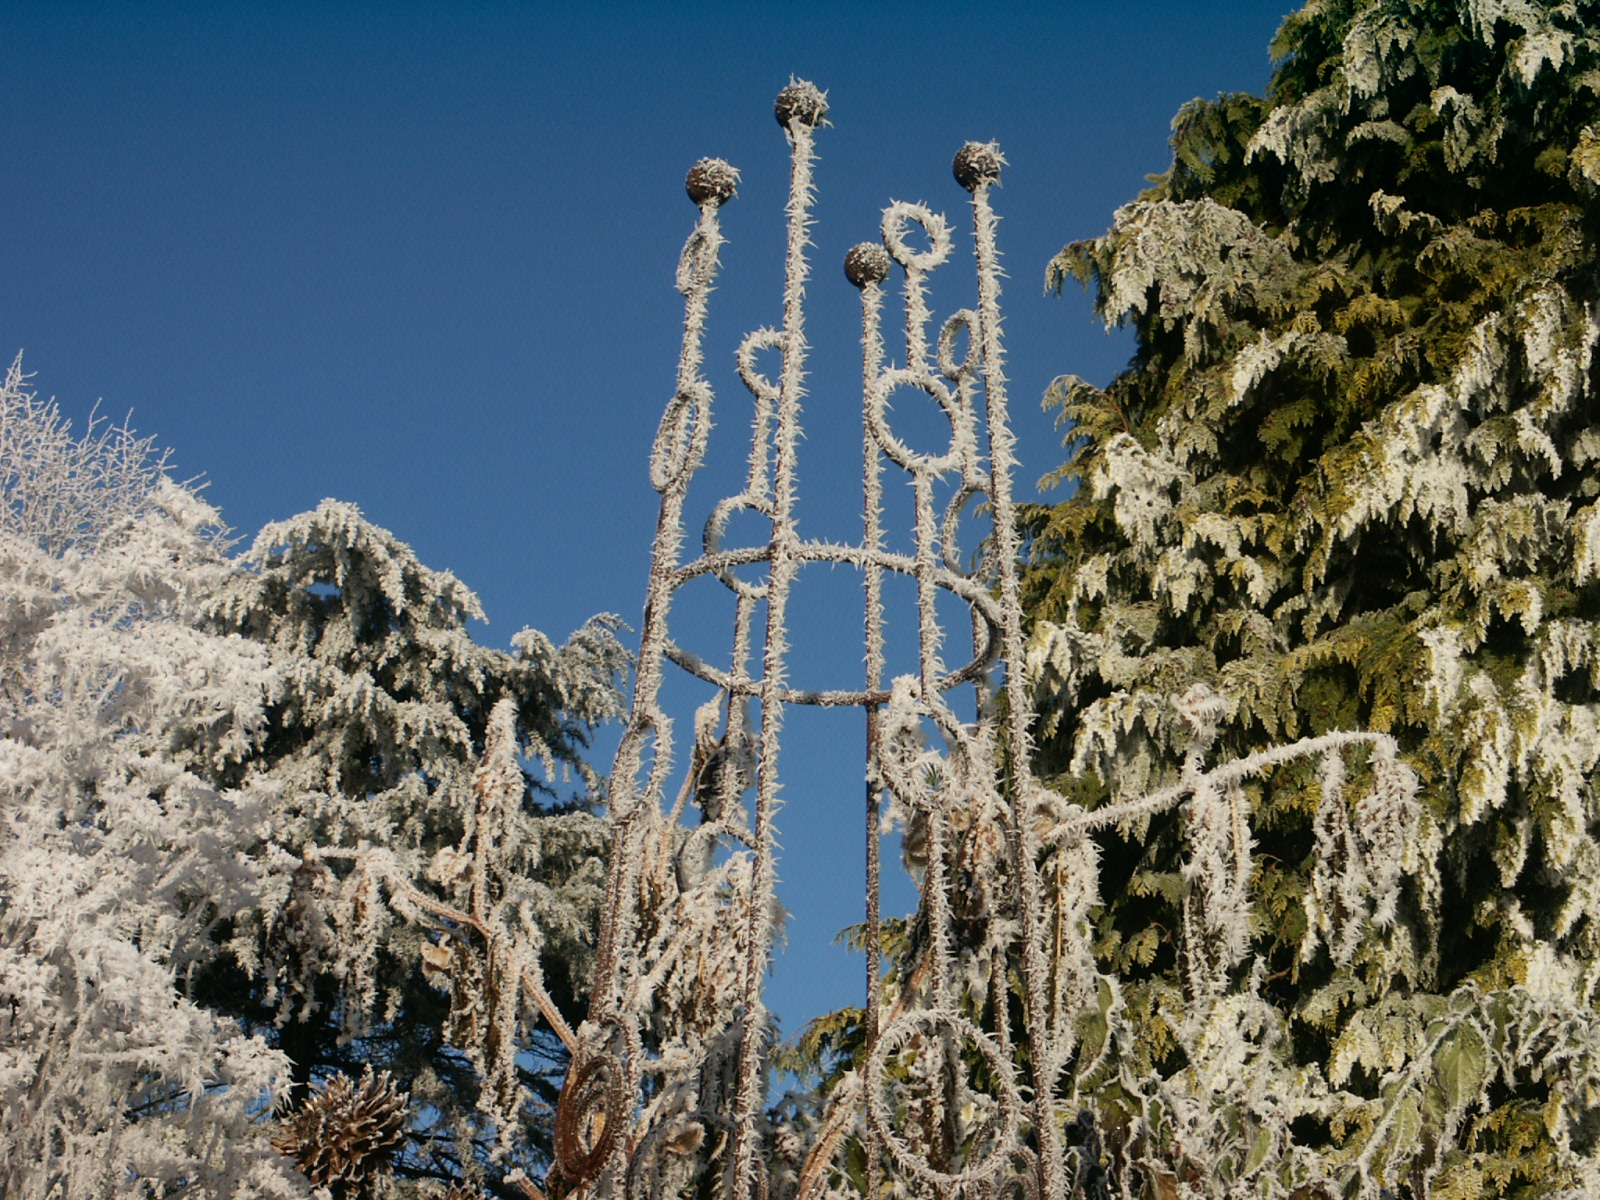 Frosty Obelisk Sweetpea Tower